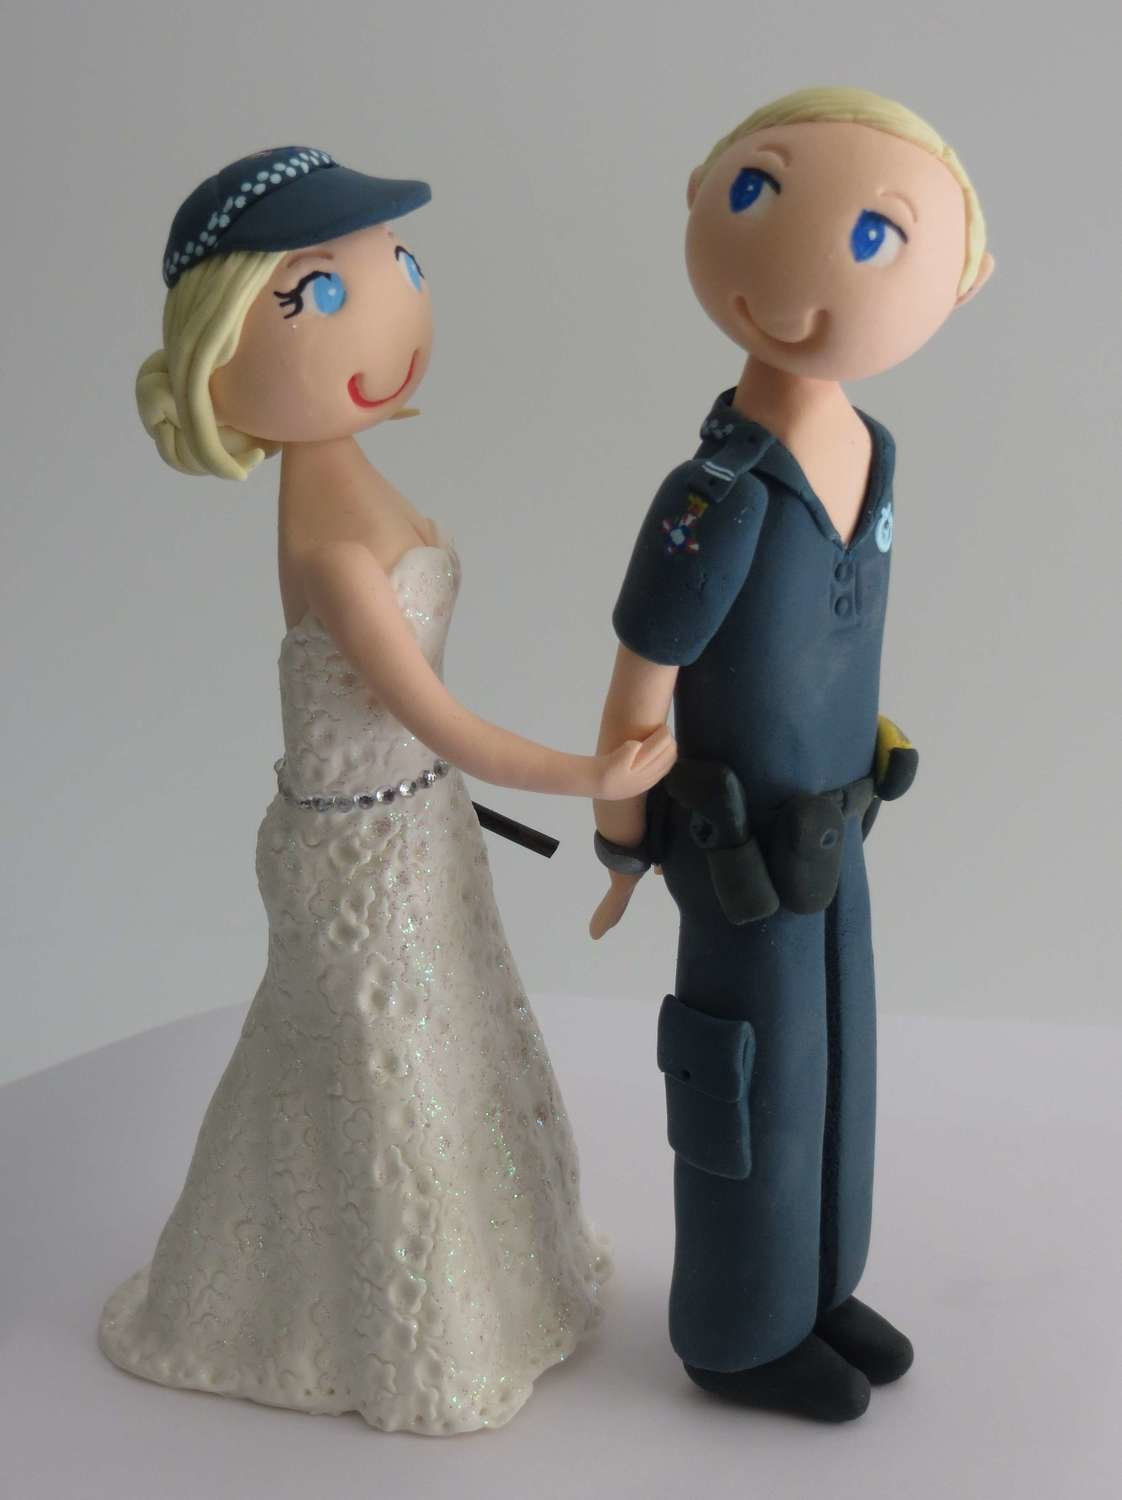 Bride arresting Police Groom on round base board